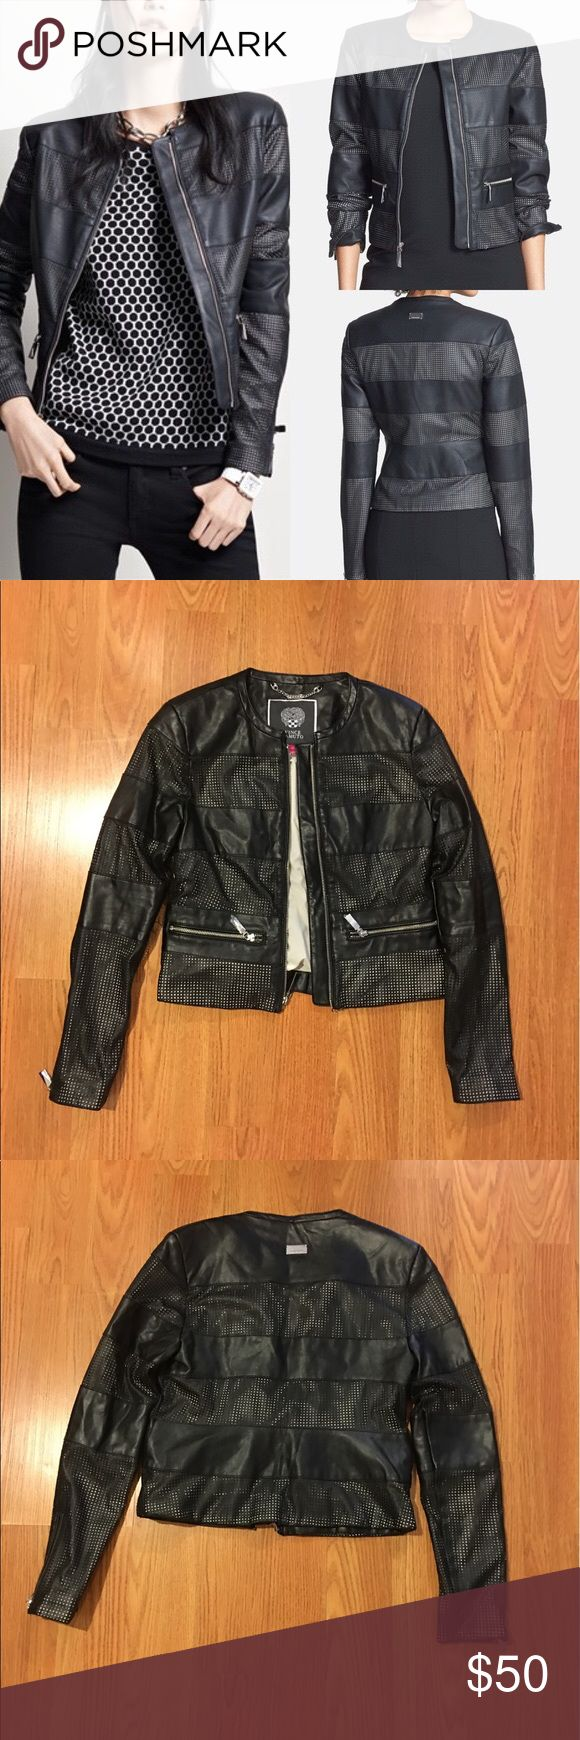 Vince Camuto Faux Leather Jacket Nwot Perforated Zip Front Vince Camuto Jackets Coats Fashion Clothes Design Fashion Design [ 1740 x 580 Pixel ]